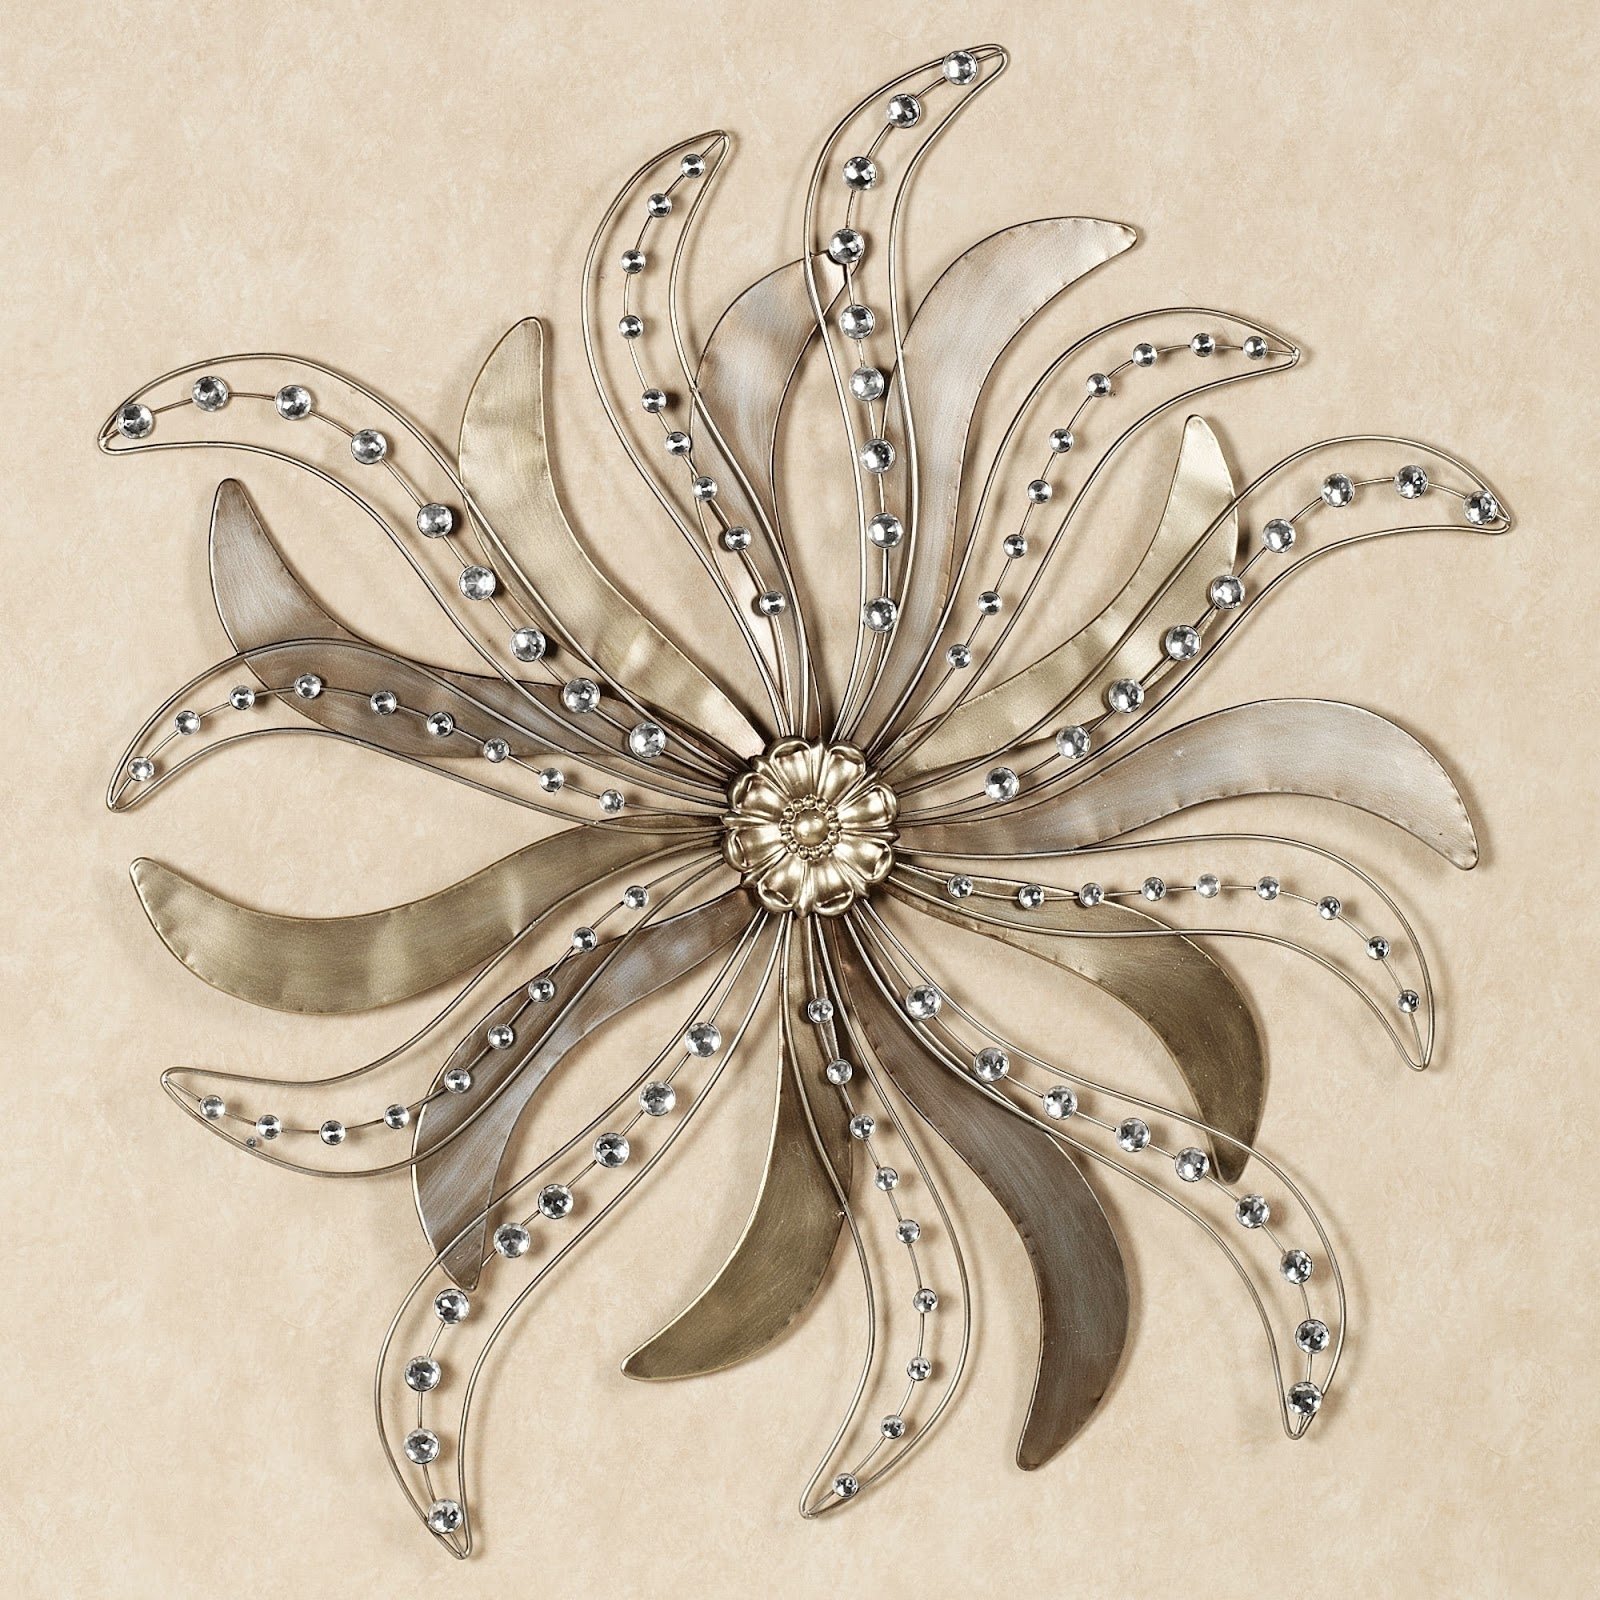 Metal Wall Art Amazon : The Lucky Design - Unique Material pertaining to Silver Metal Wall Art (Image 7 of 20)